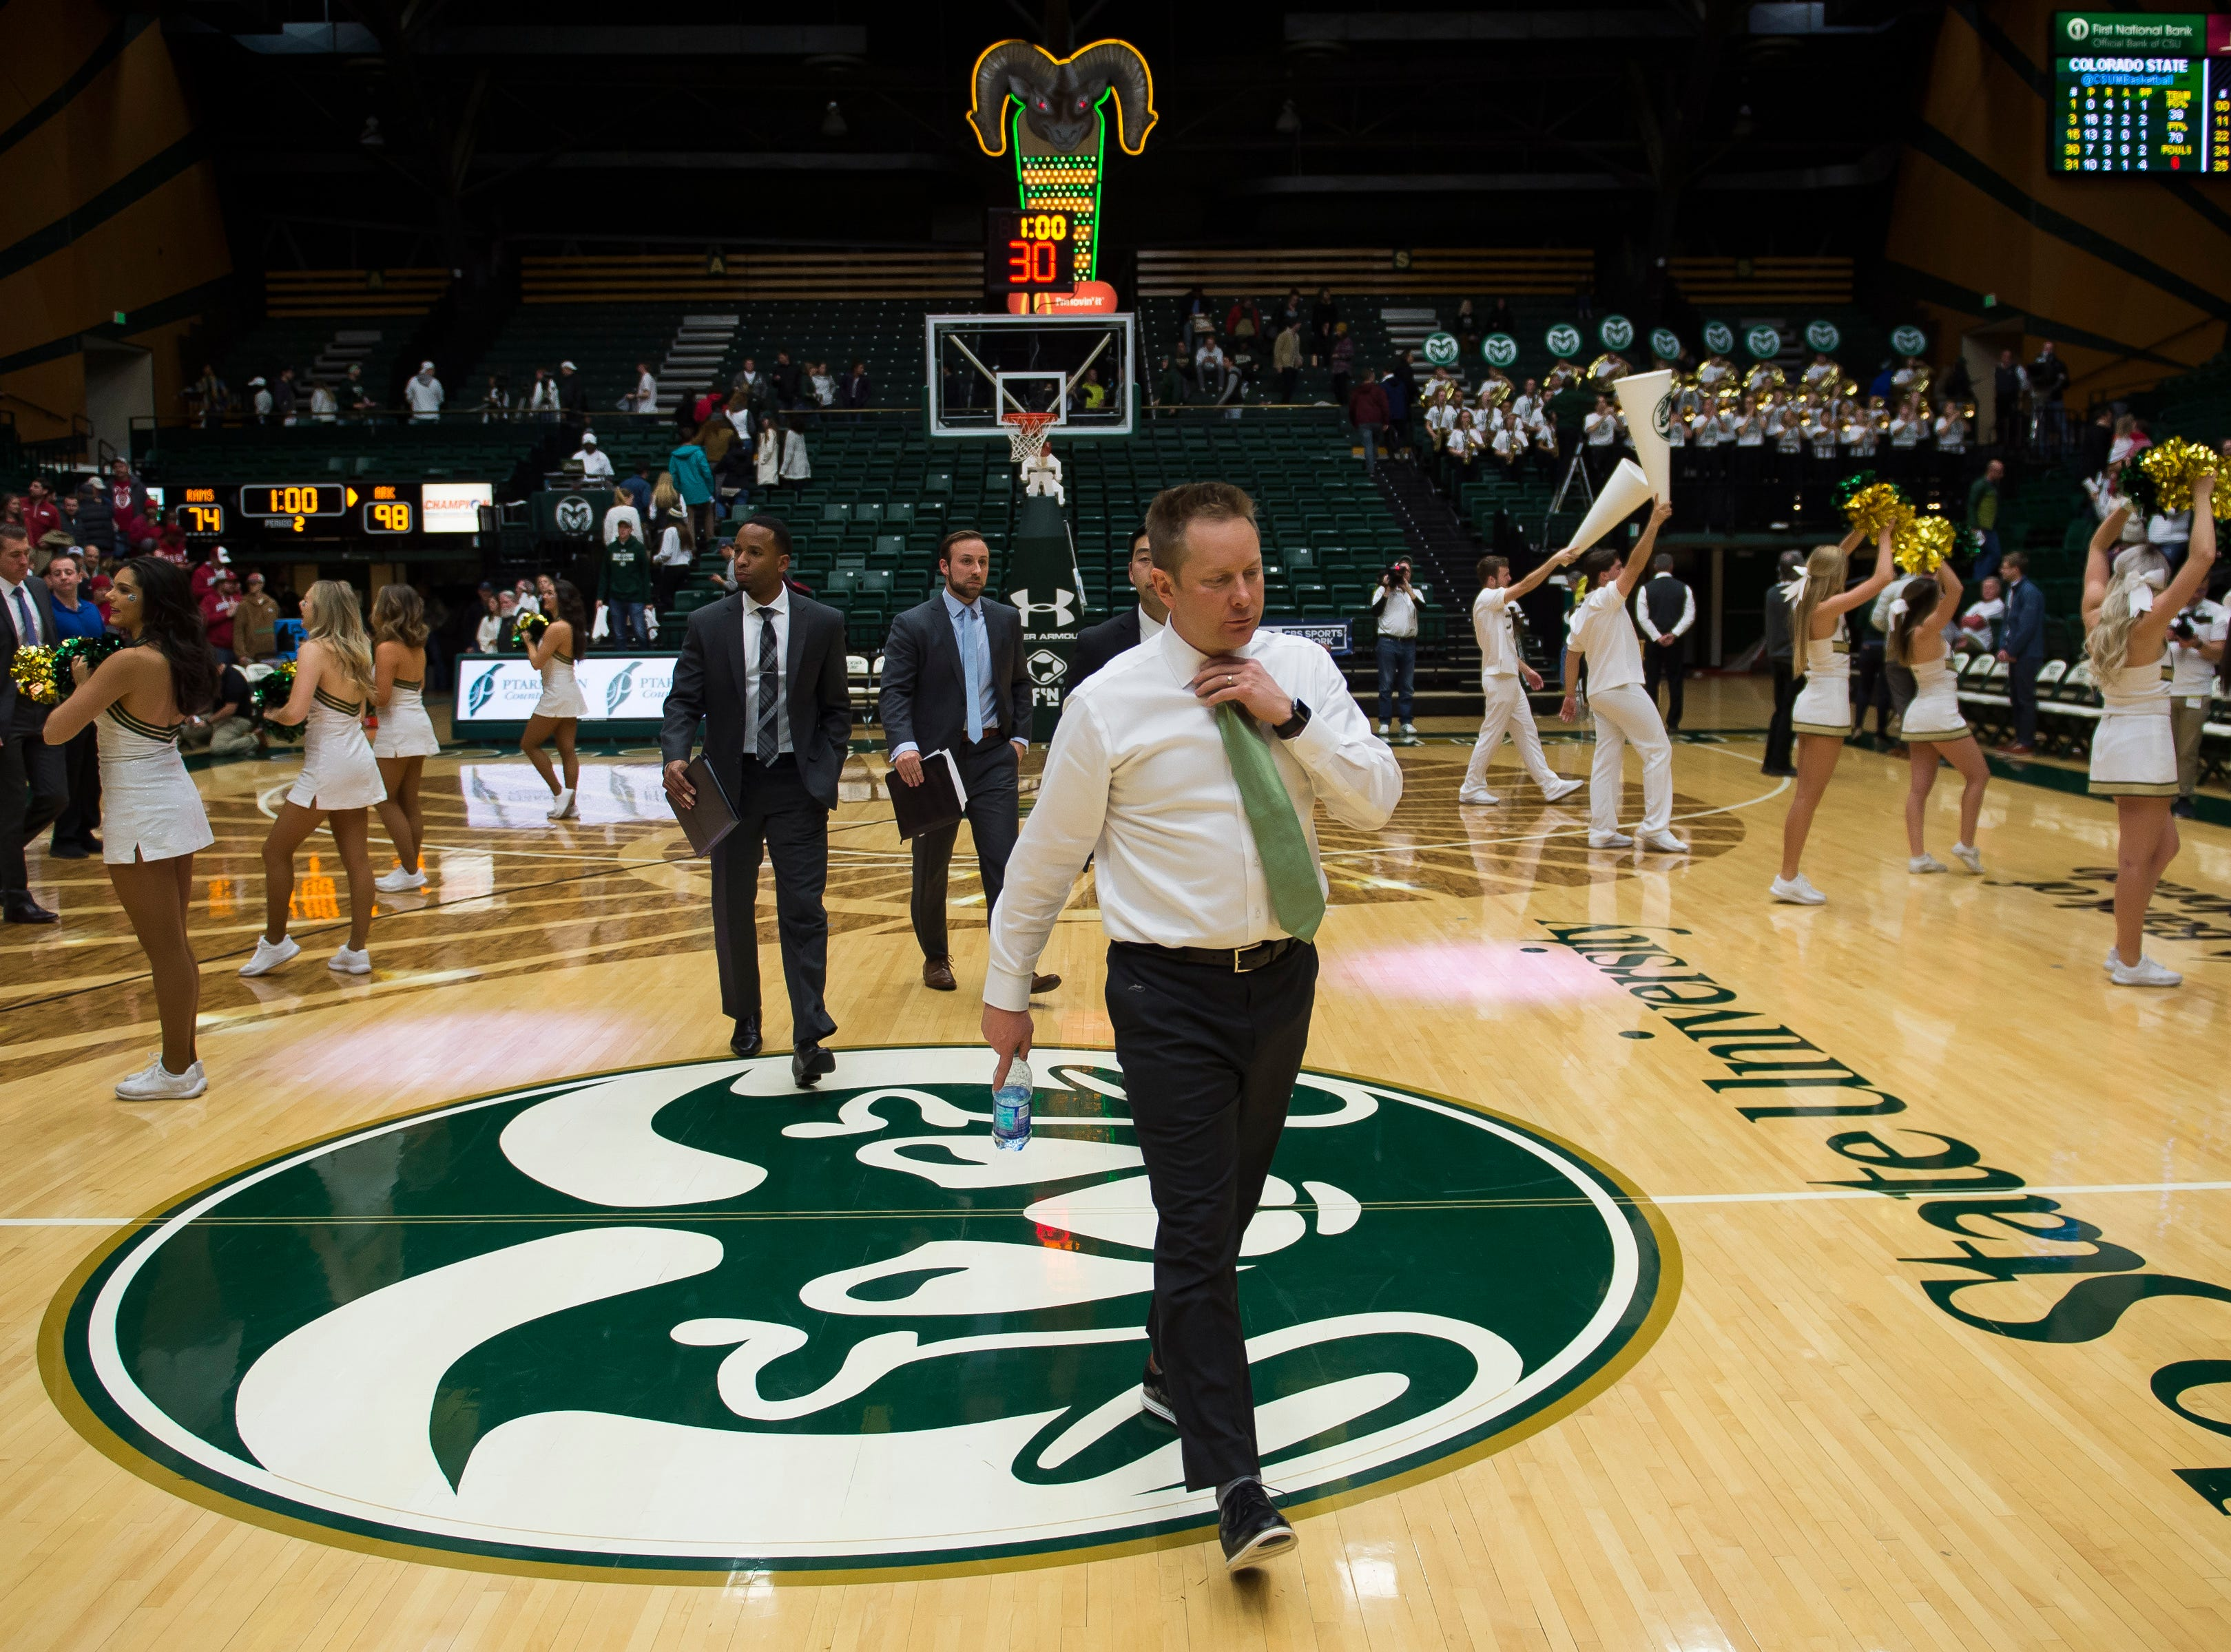 Colorado State University head coach Niko Medved walks to the tunnel after a loss to Arkansas on Wednesday, Dec. 5, 2018, Moby Arena in Fort Collins, Colo.